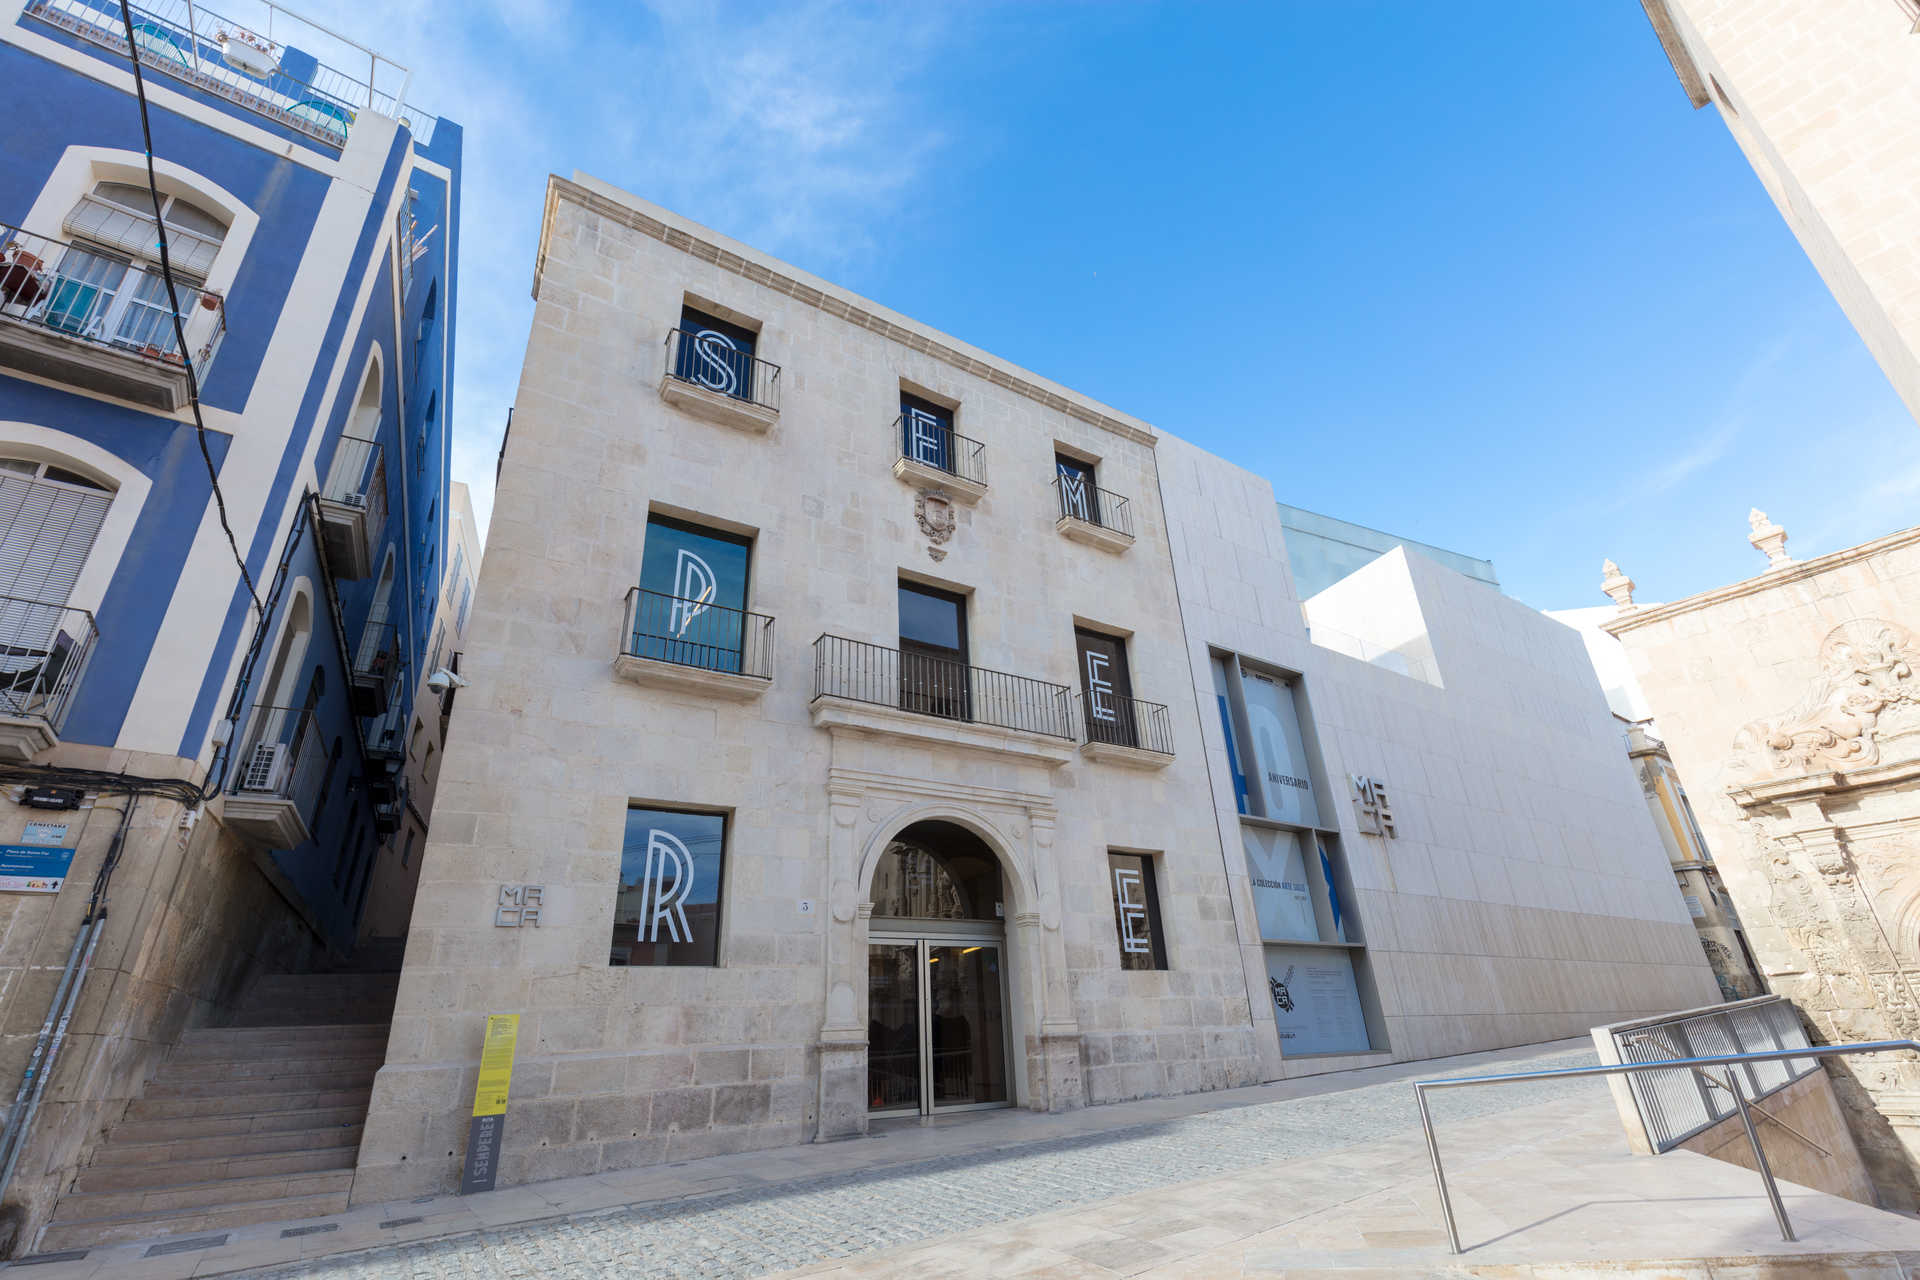 MUSÉE D'ART CONTEMPORAIN DE ALICANTE